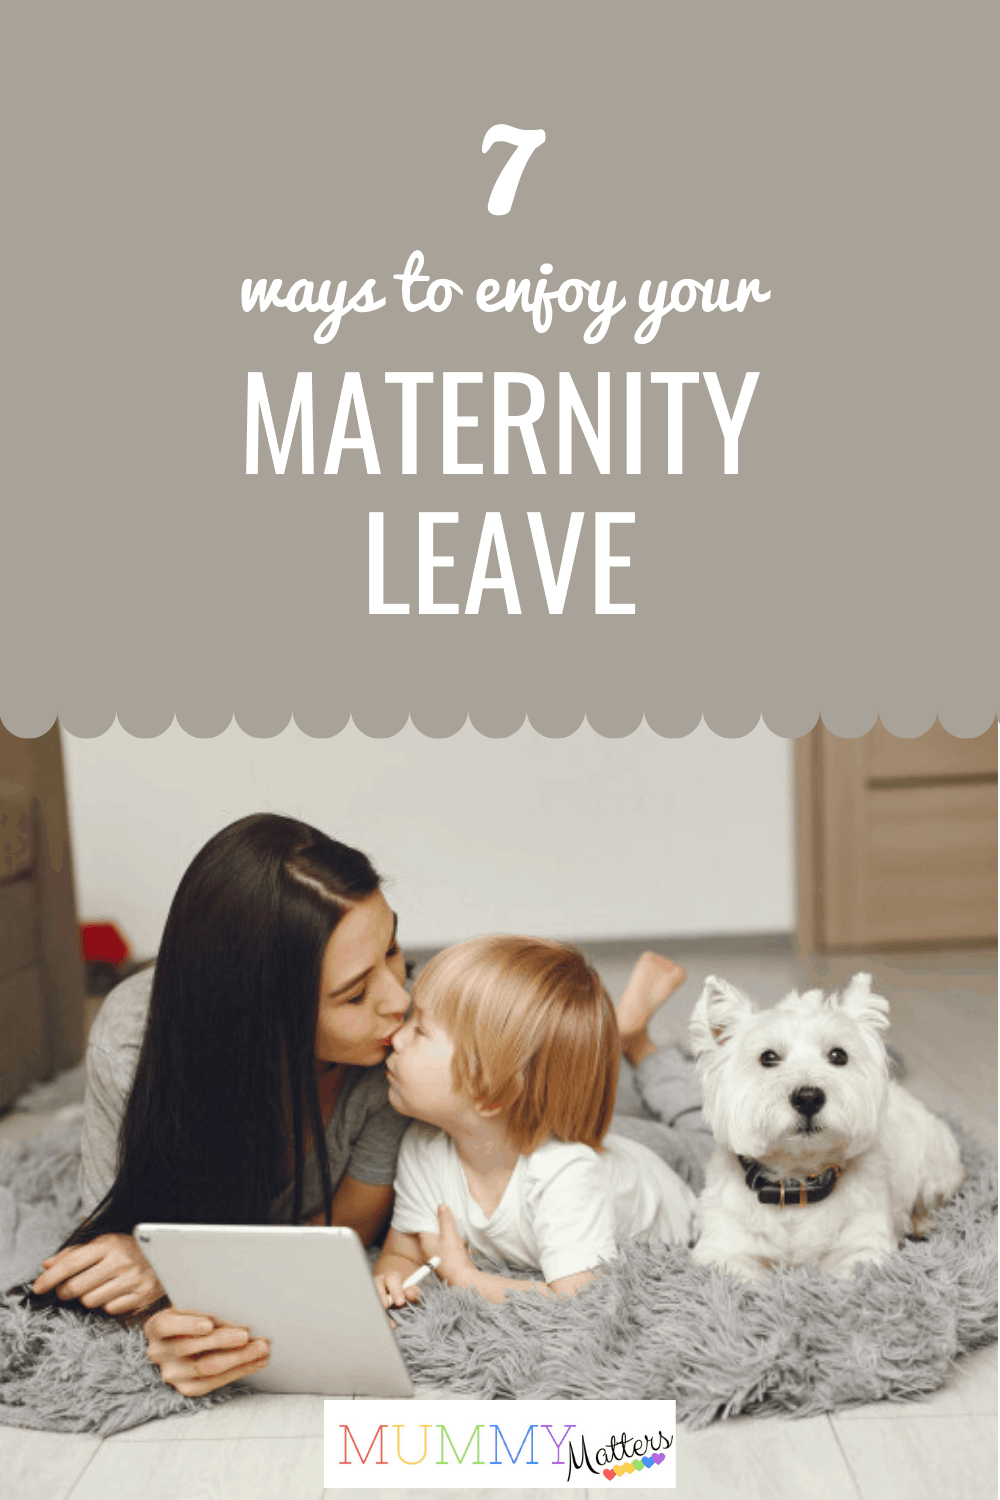 The days after your baby arrives will be a whirlwind of emotions, sleepless nights, and bonding with your baby. Read on for tips to enjoy your maternity leave.